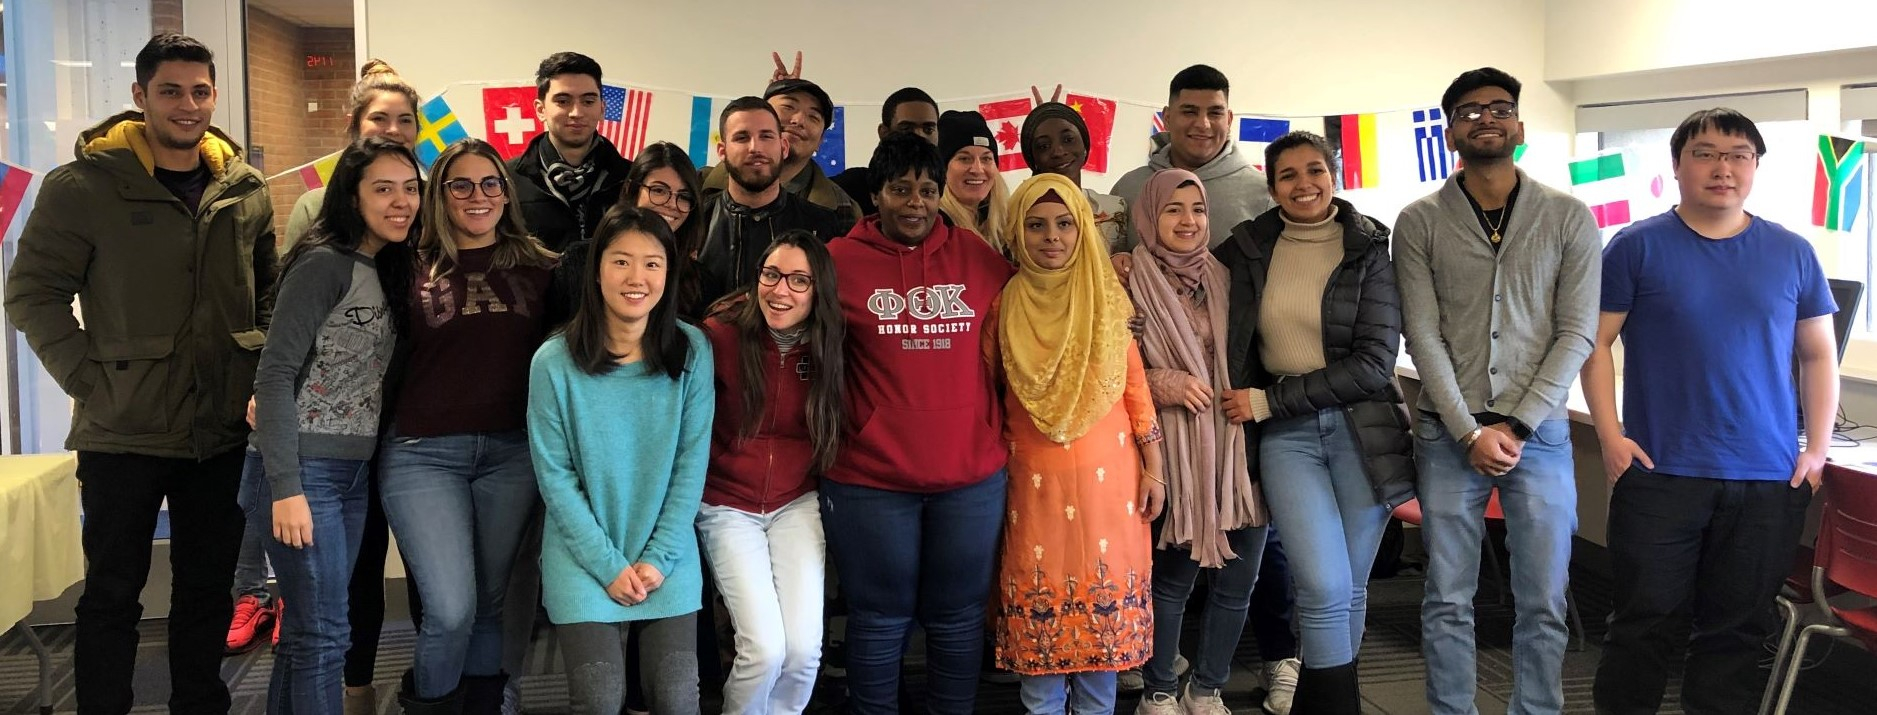 International Students - Delaware County Community College Throughout Fall 2021 Calendar Delaware County Community College